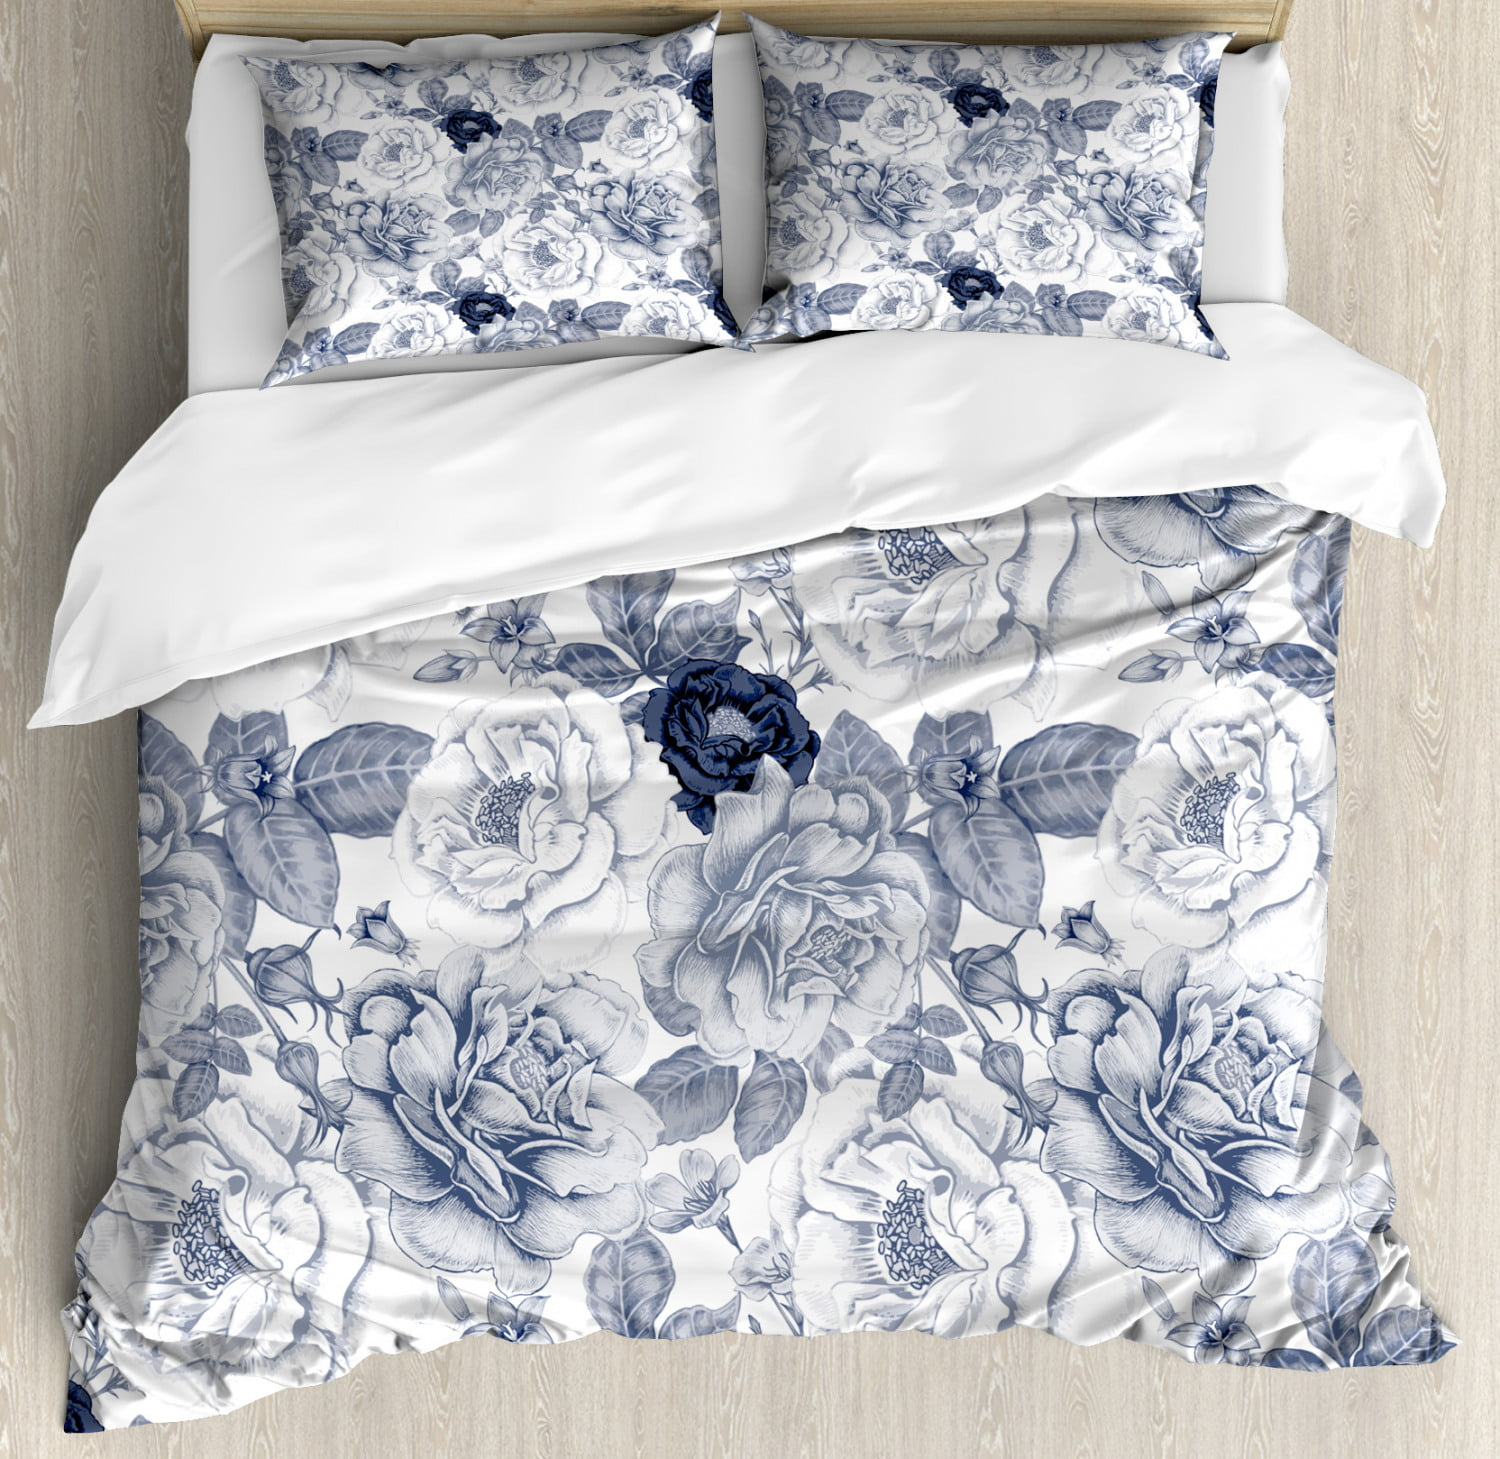 Shabby Chic Duvet Cover Set Garden Spring Roses Buds With Leaves Flowers Romantic Image Artwork Decorative Bedding Set With Pillow Shams Blue Grey And White By Ambesonne Walmart Com Walmart Com